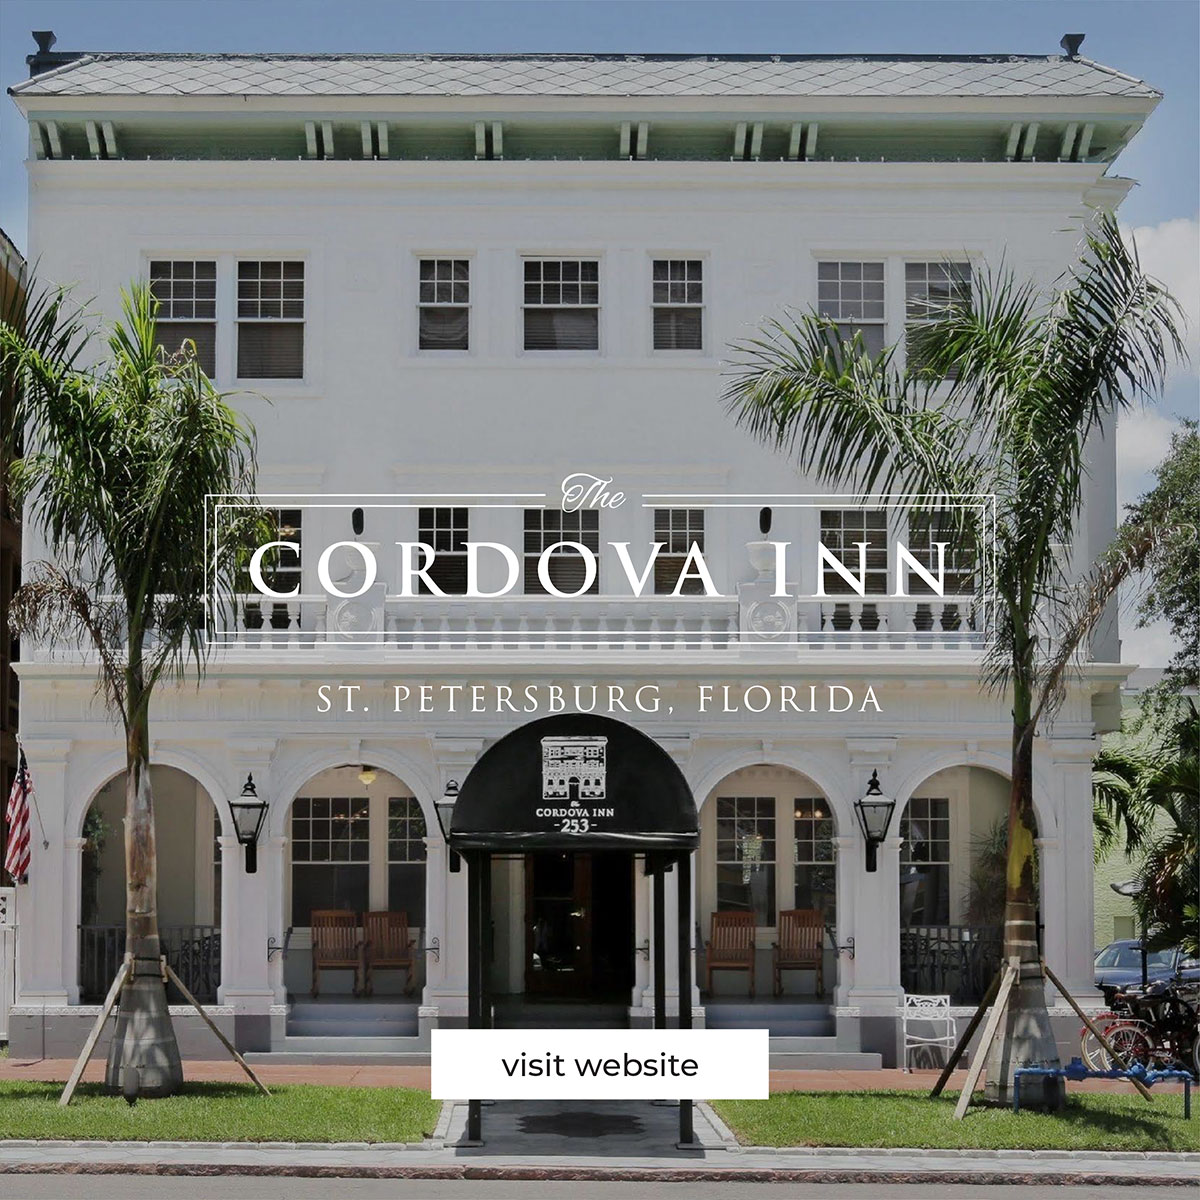 Cordova Inn - St Petersburg, Florida - Gianco Companies